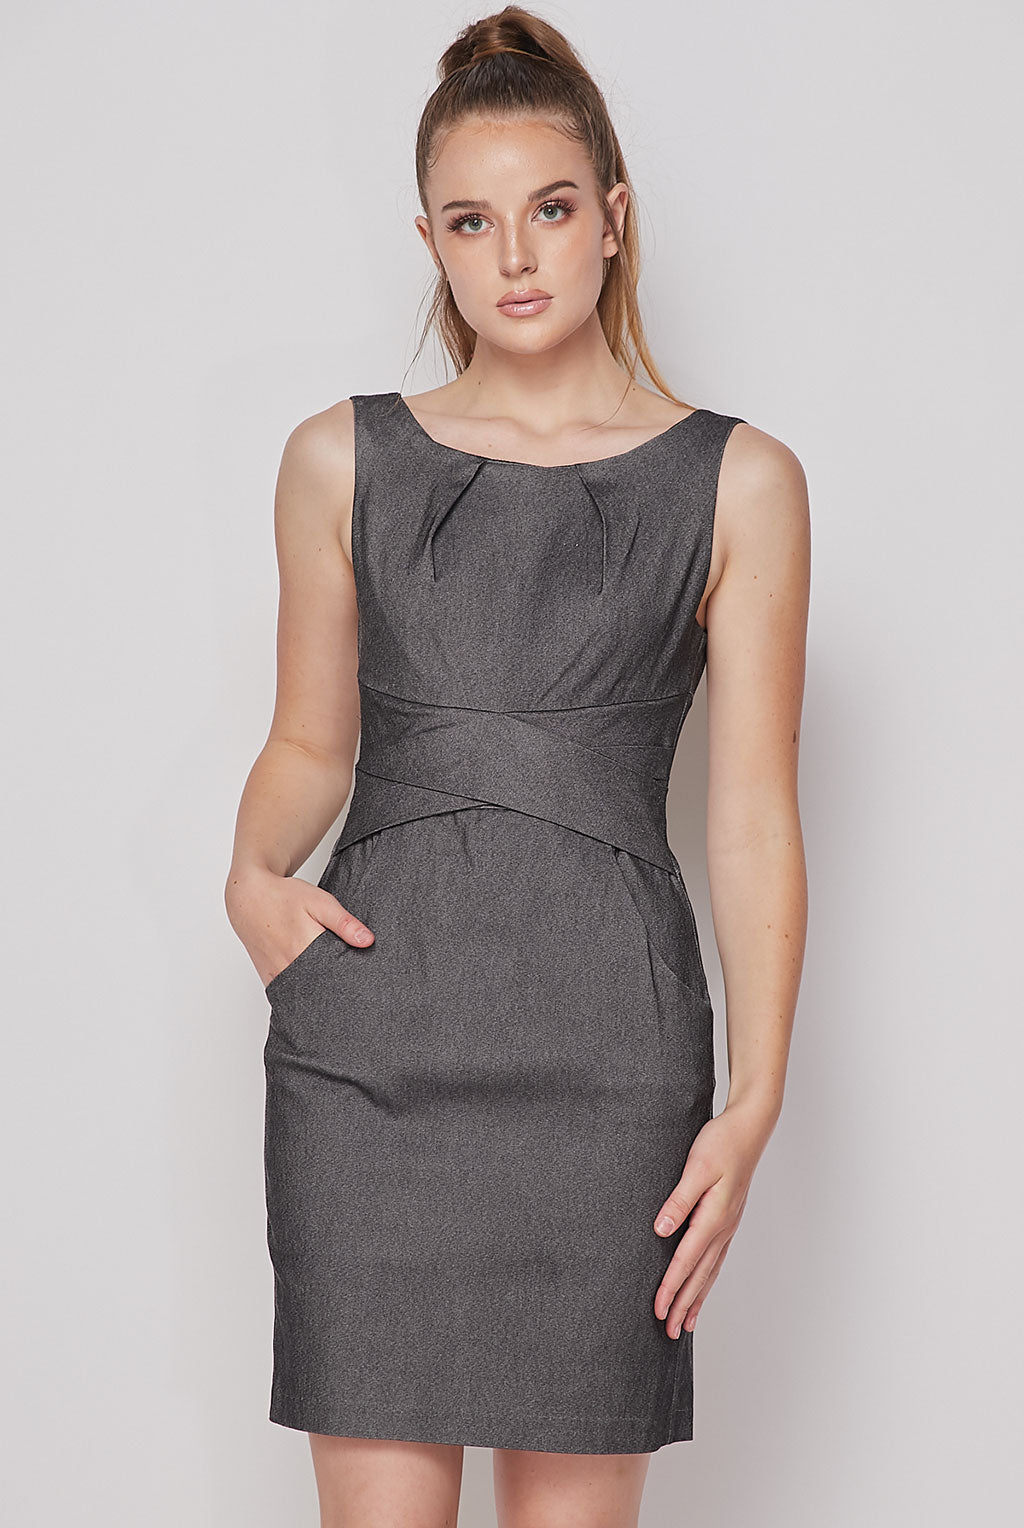 Teeze Me | Cross Waist Sheath Career Dress With Pockets | Charcoal